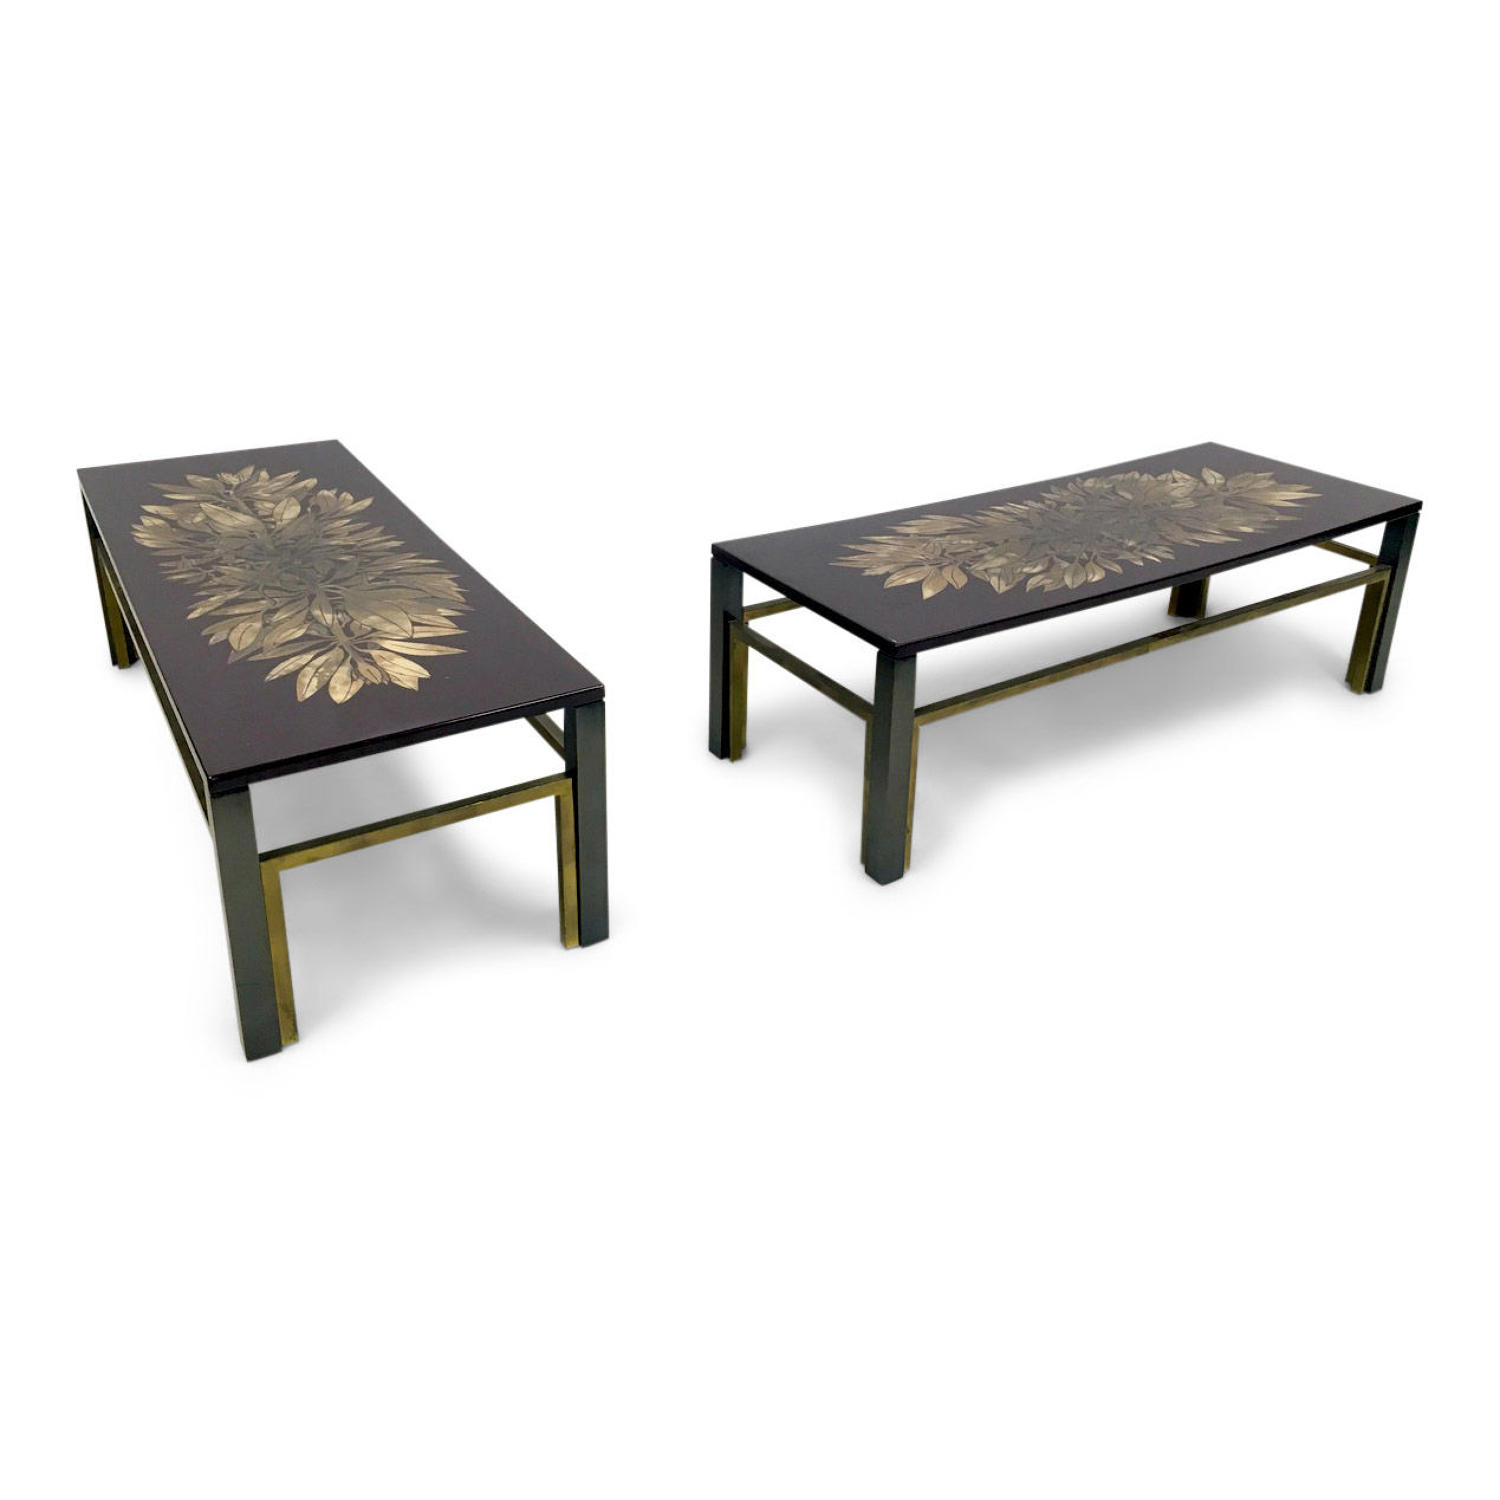 A pair of 1970s lacquered coffee tables